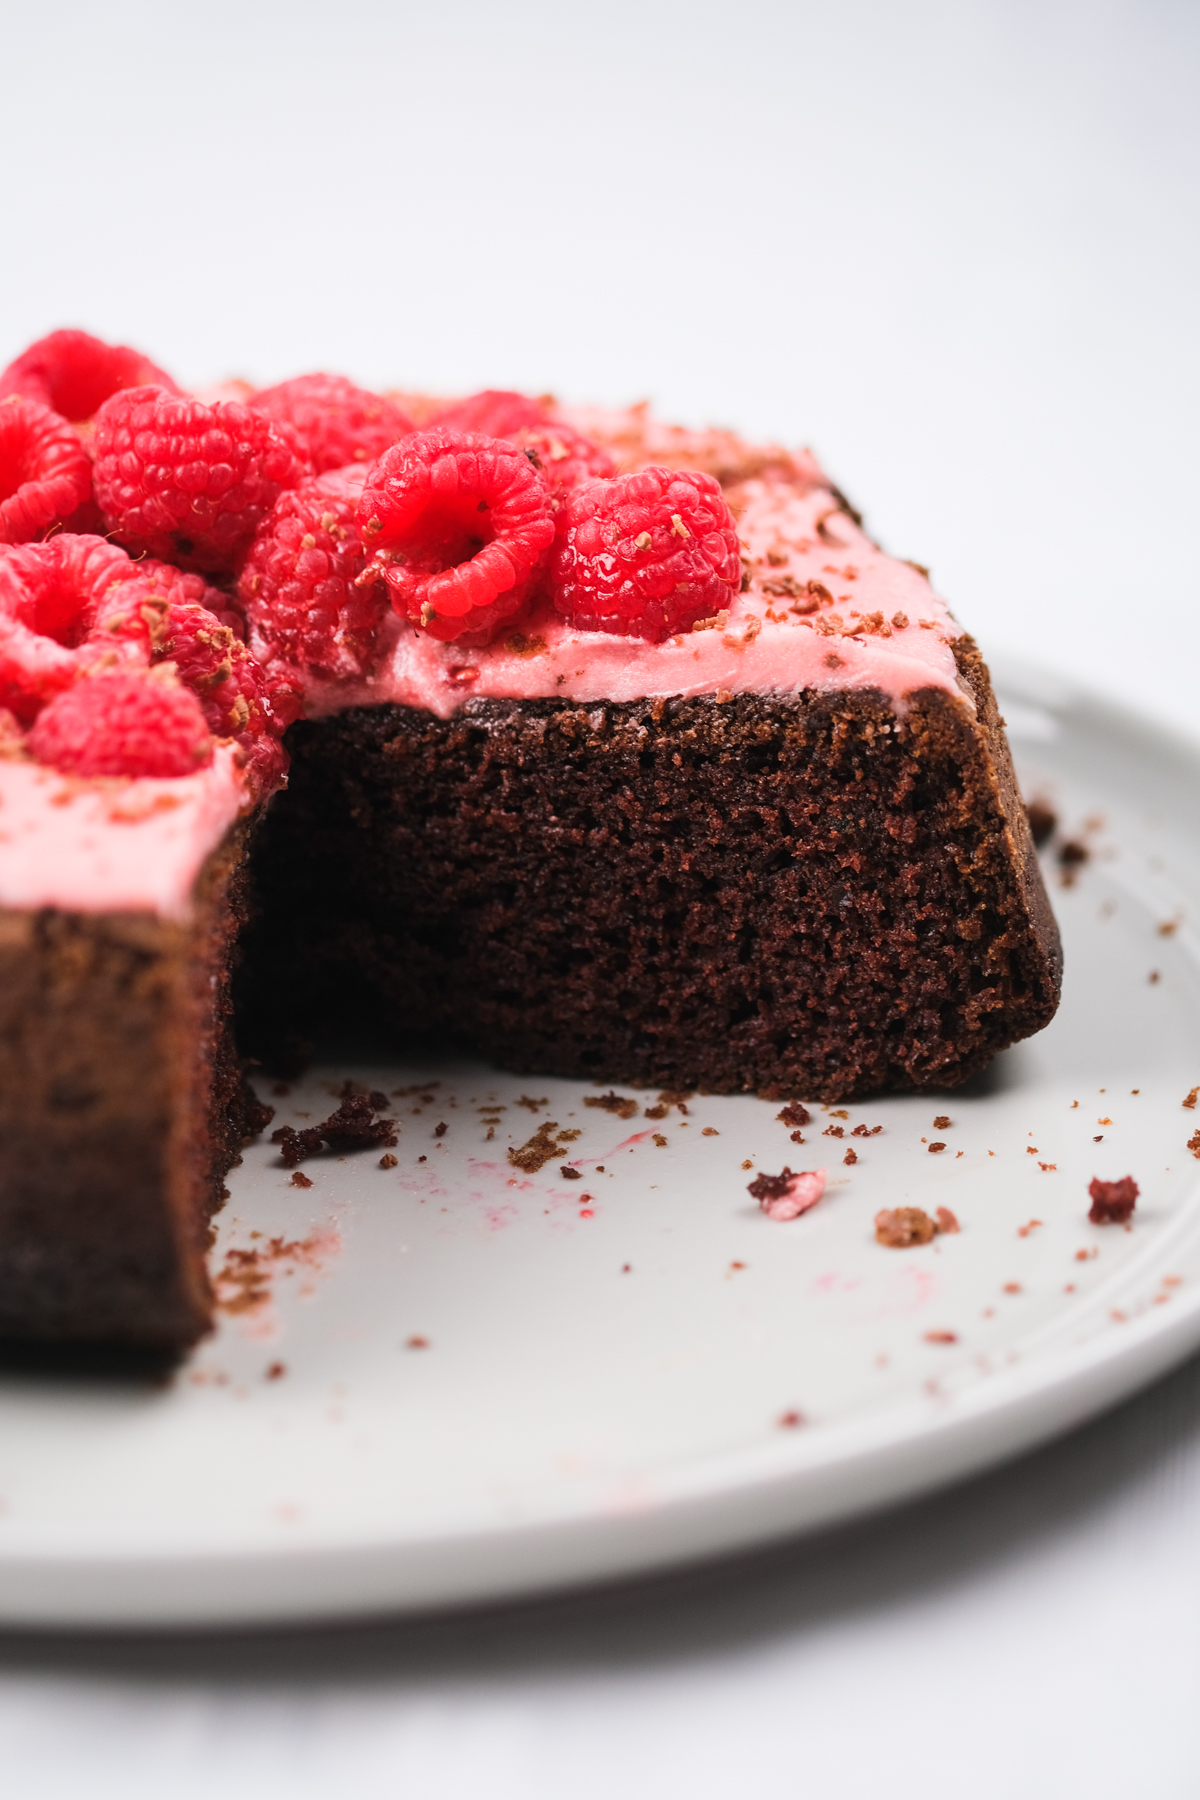 chocolate raspberry cake with pink frosting and chocolate shavings